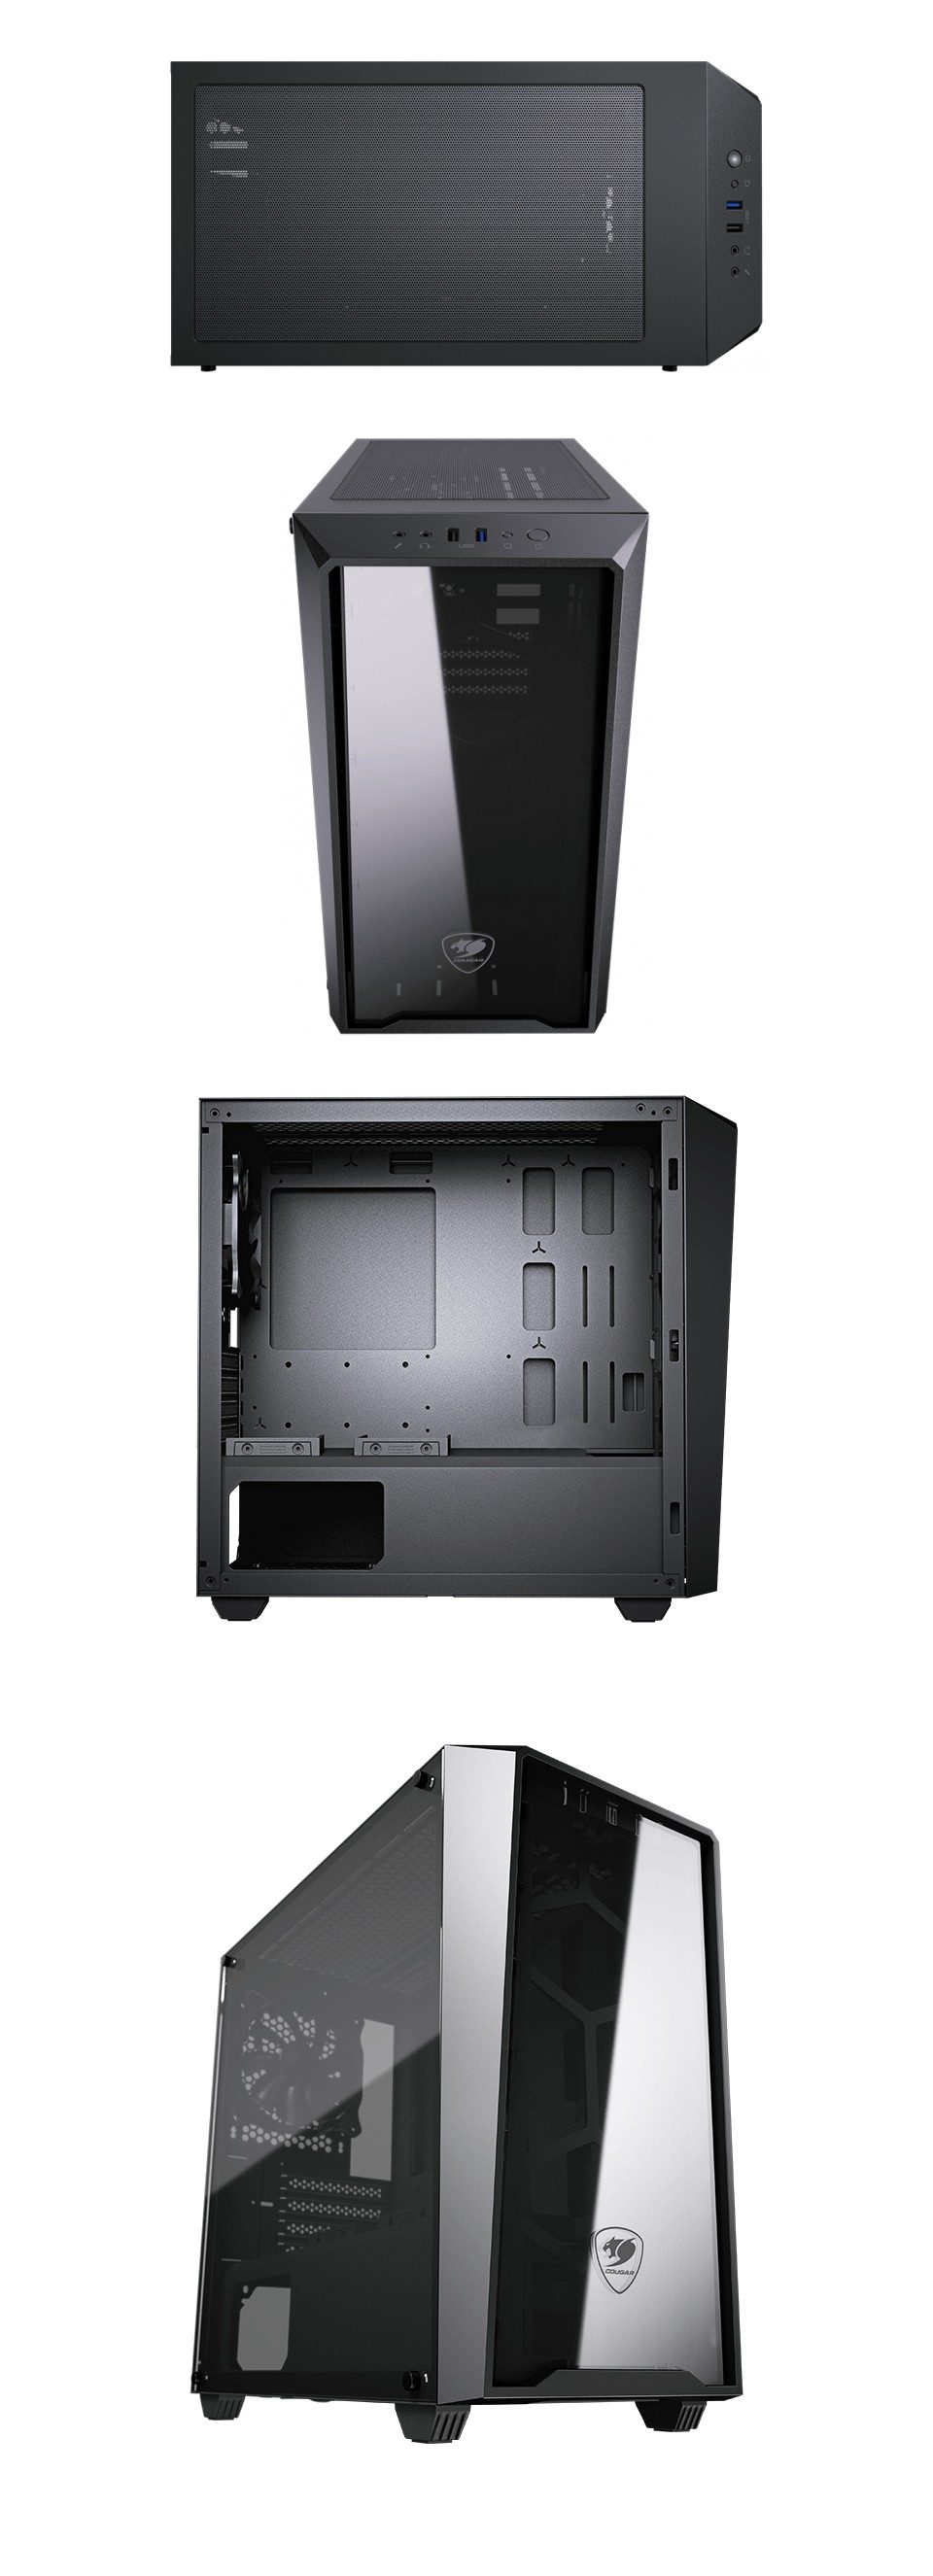 Cougar MG120 Mini Tower Case product